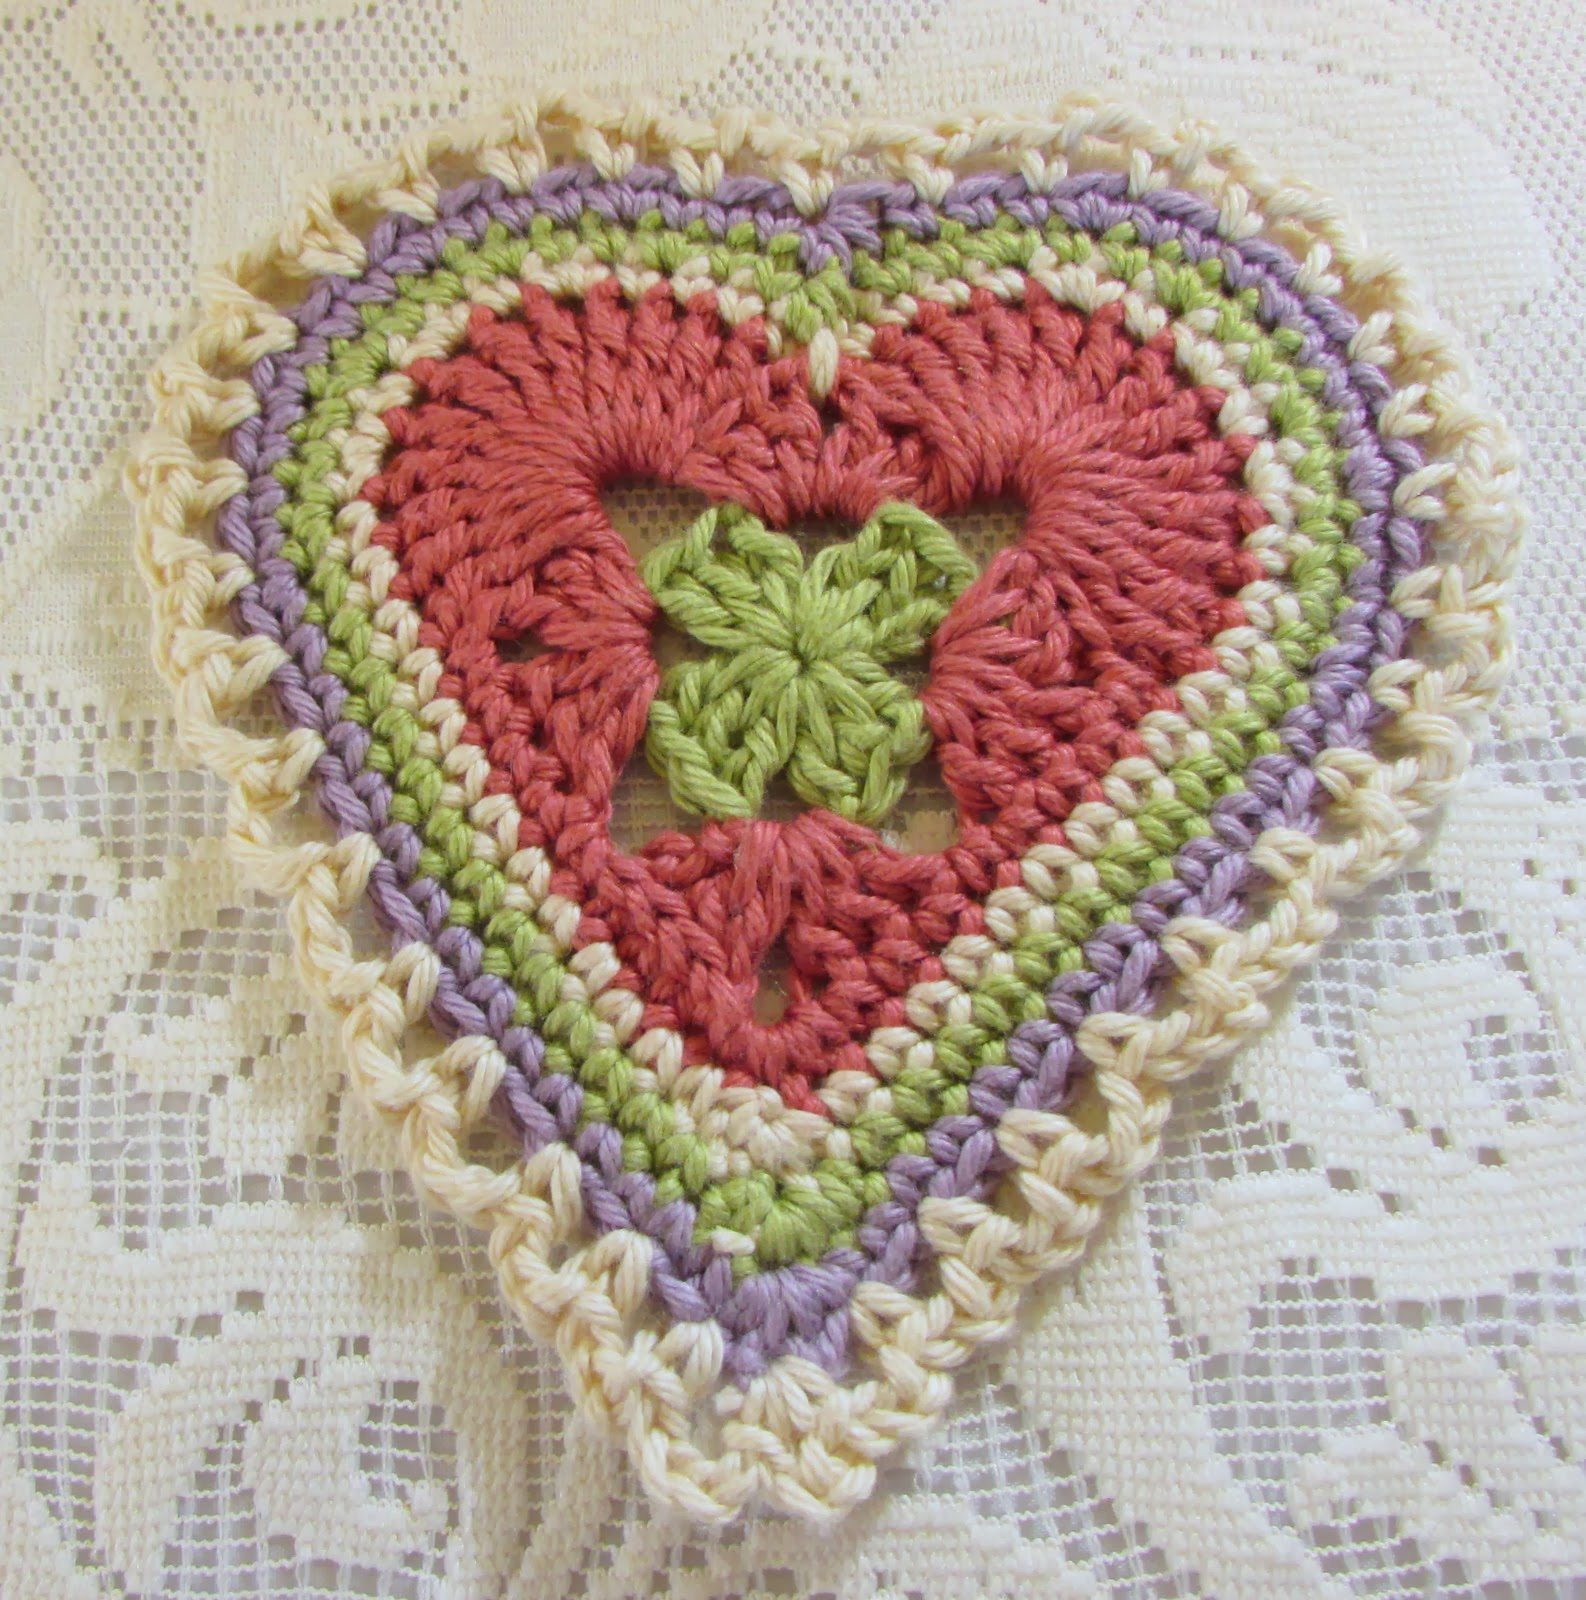 Nancy drew designs granny sweet heart pattern sweet hearts bunting pattern bankloansurffo Images